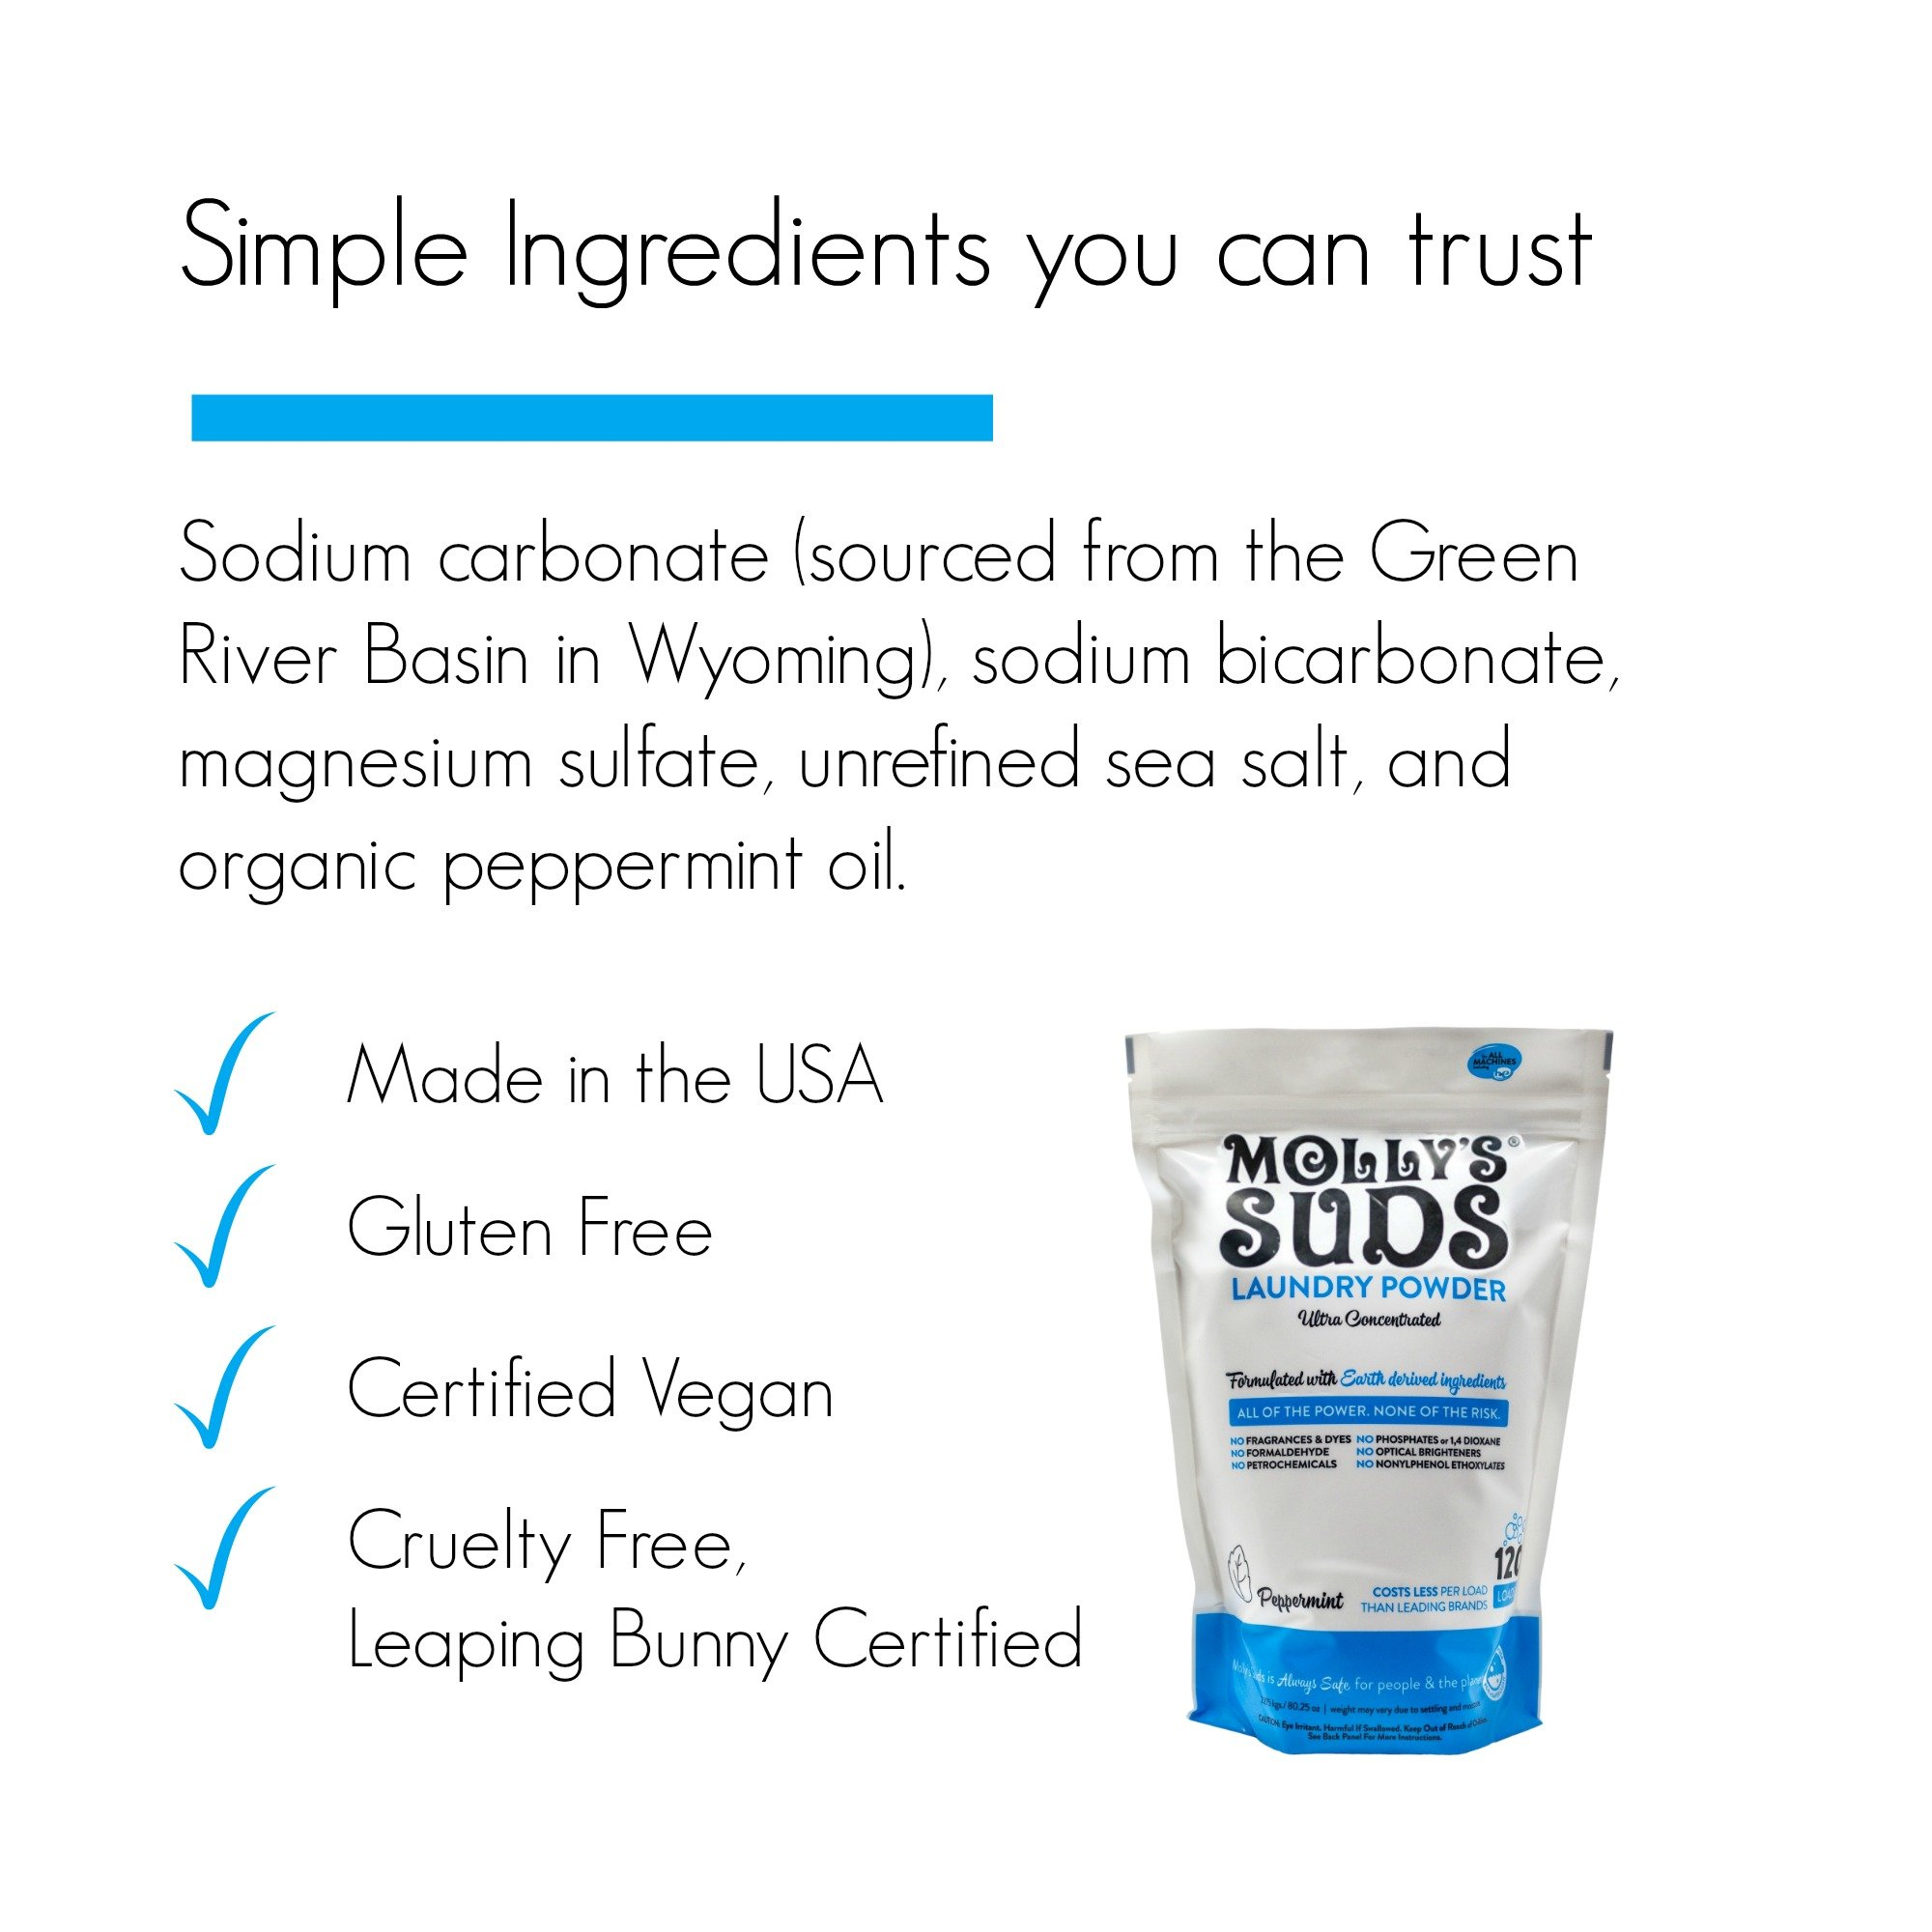 Molly's Suds Original Laundry Detergent Powder 120 load, Natural Laundry Soap for Sensitive Skin by Molly's Suds (Image #3)